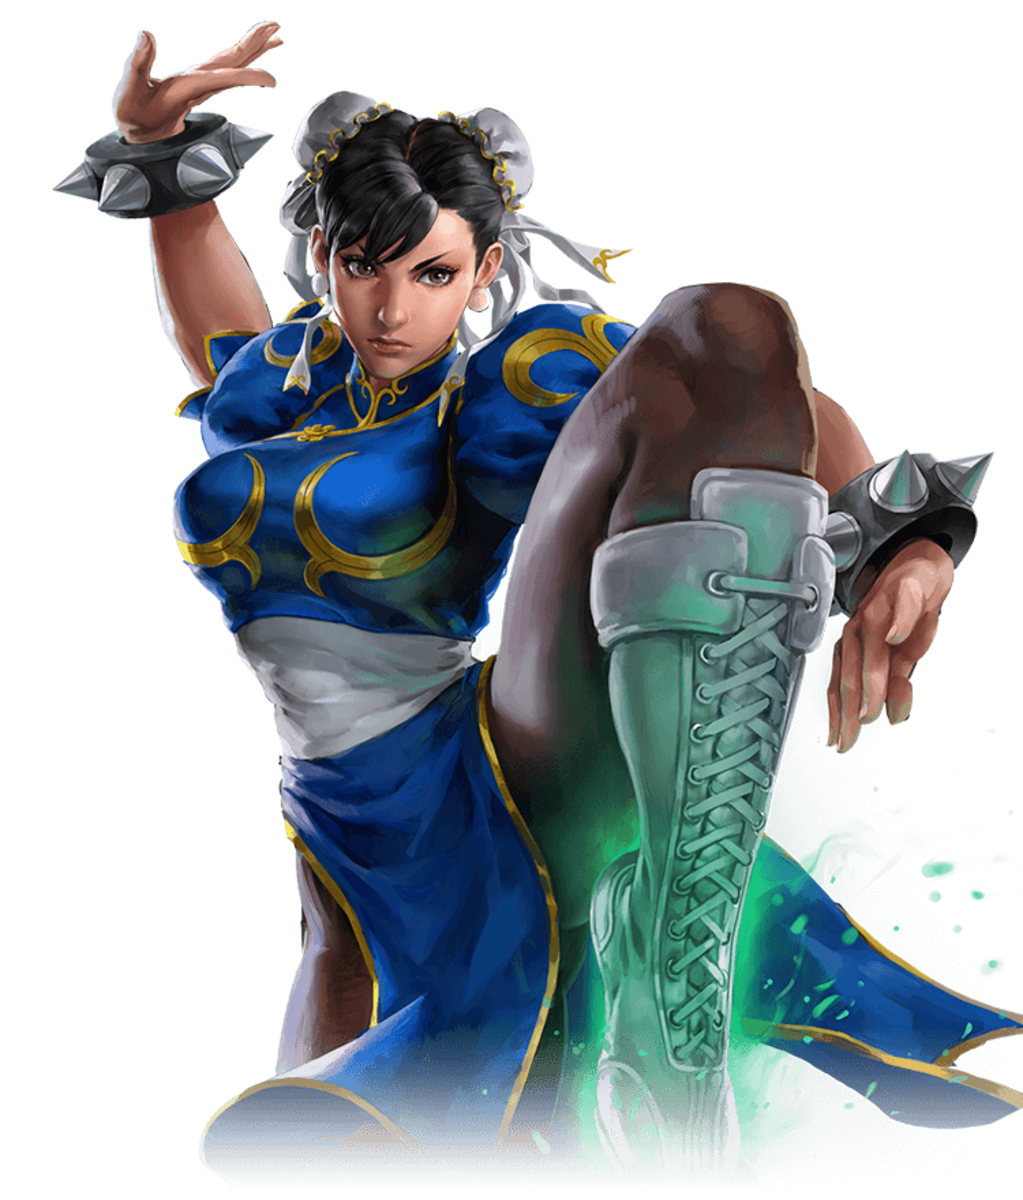 Chun Li  is the female character to appear in a fighting video game franchise.